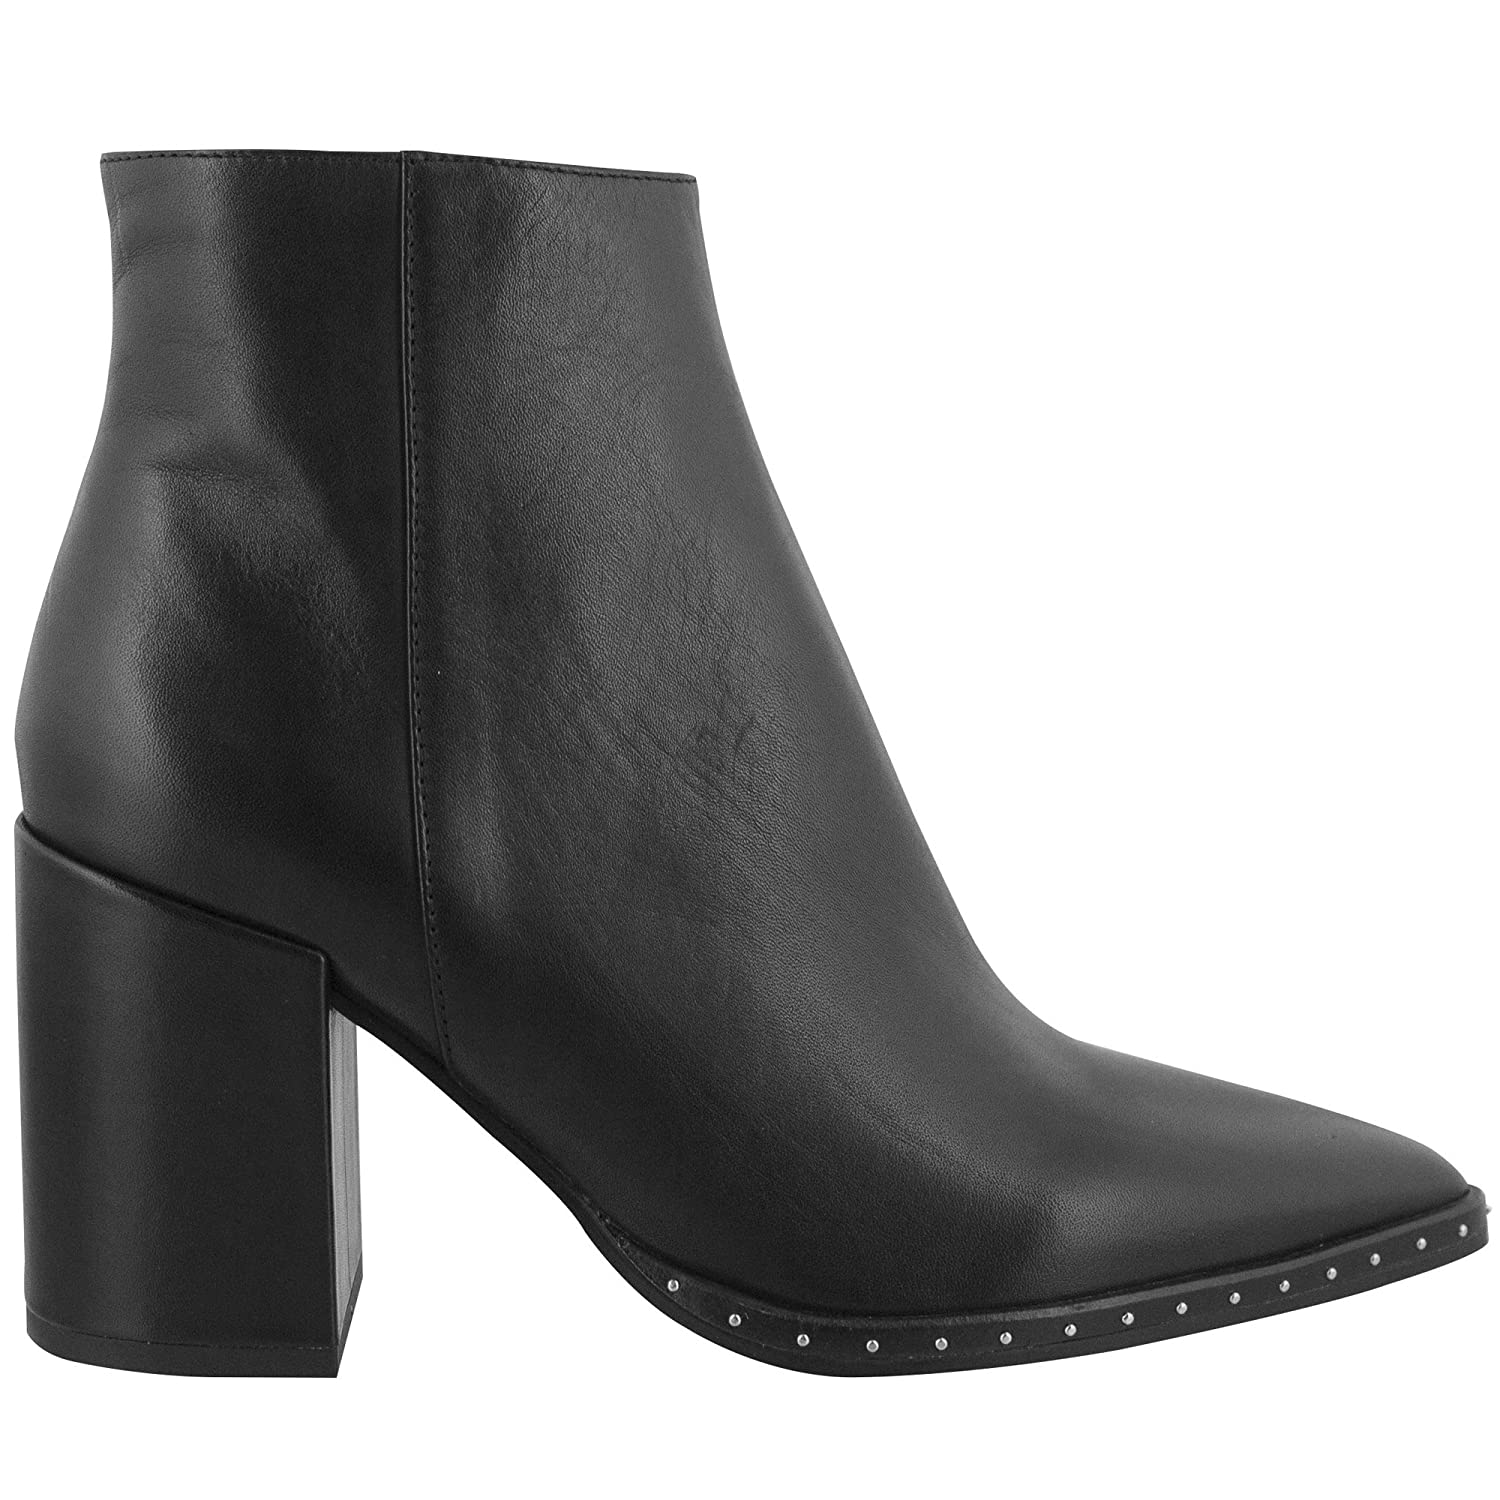 Tony Bianco Bailey Leather Ankle Boots for Women - with Pointed Toe & Silver Stud Detailing B075ZQHXYF 6 B(M) US|Black Albany